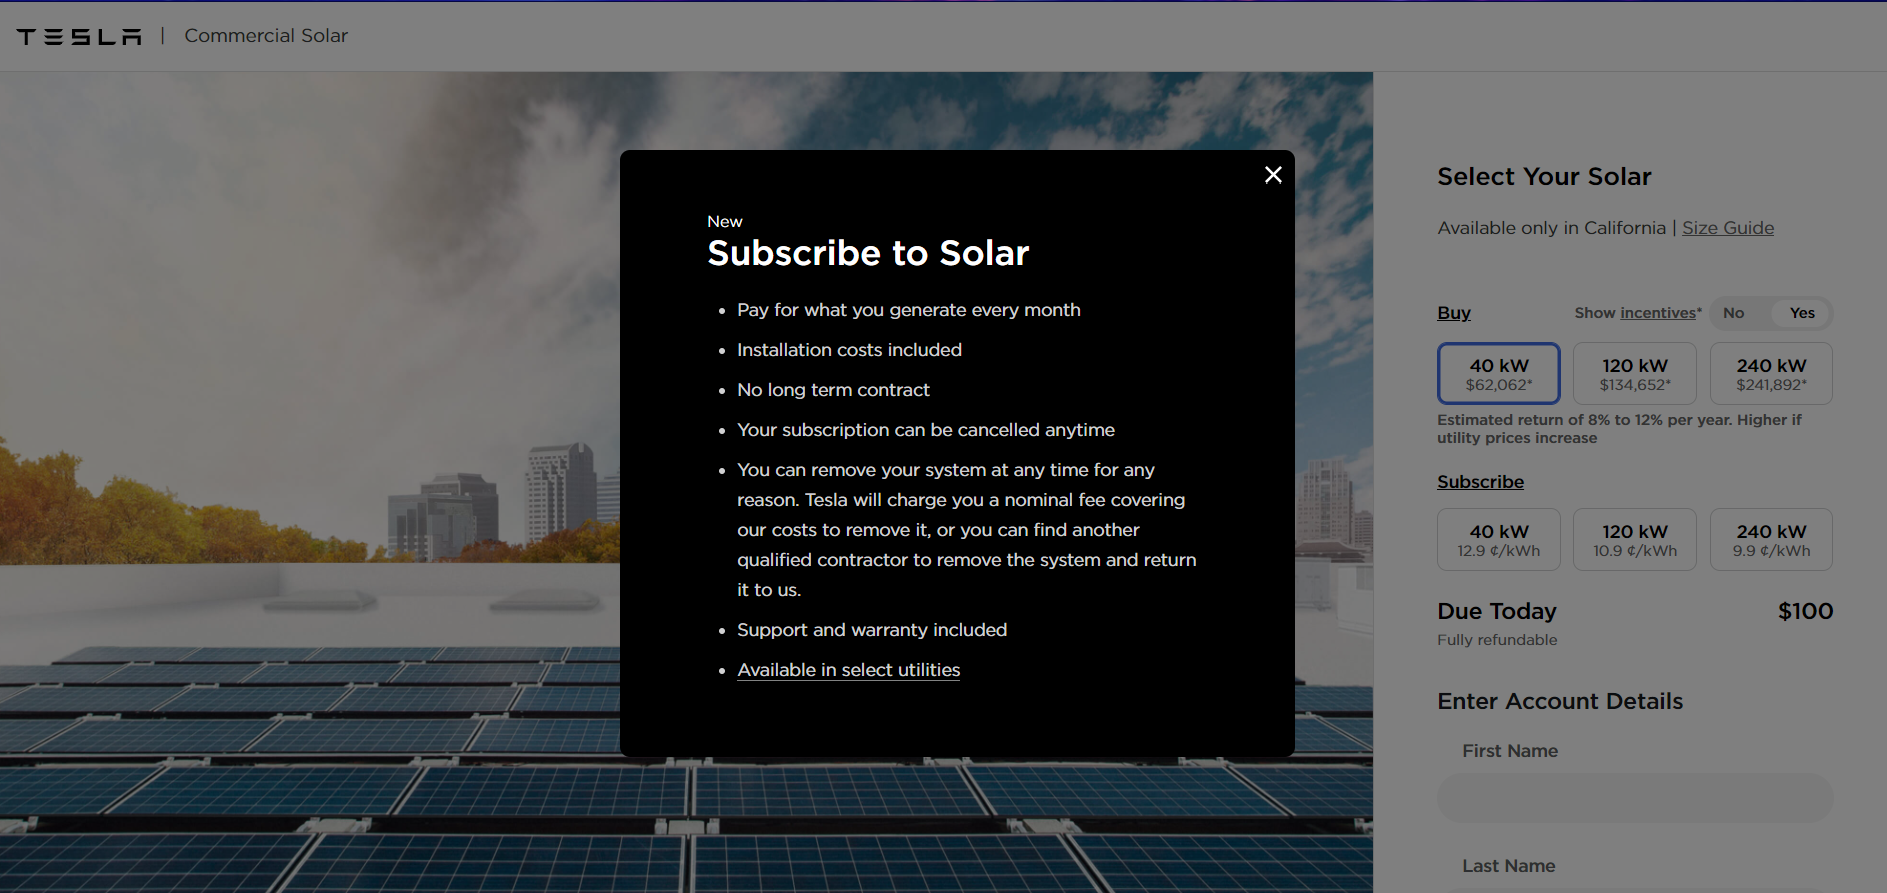 Tesla's new simplified solar offering means you can purchase a solar power system with Apple Pay in 30 seconds